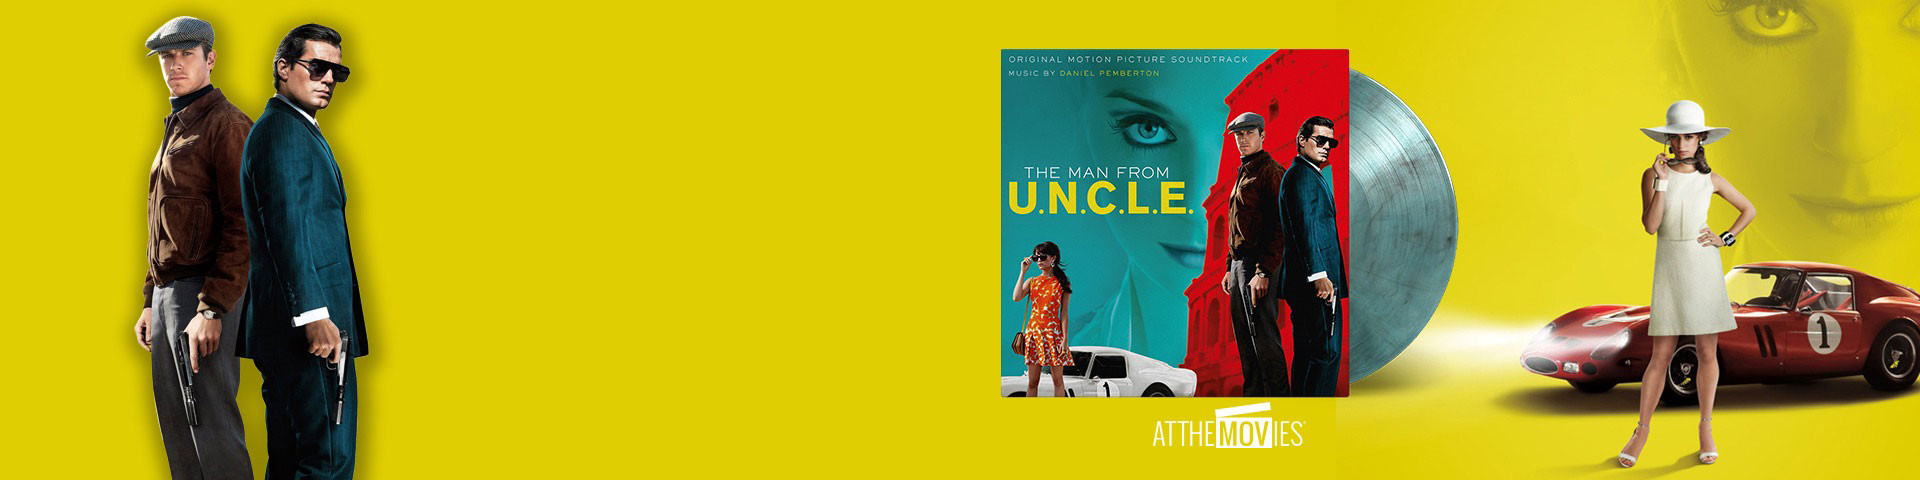 ORIGINAL SOUNDTRACK - THE MAN FROM U.N.C.L.E.